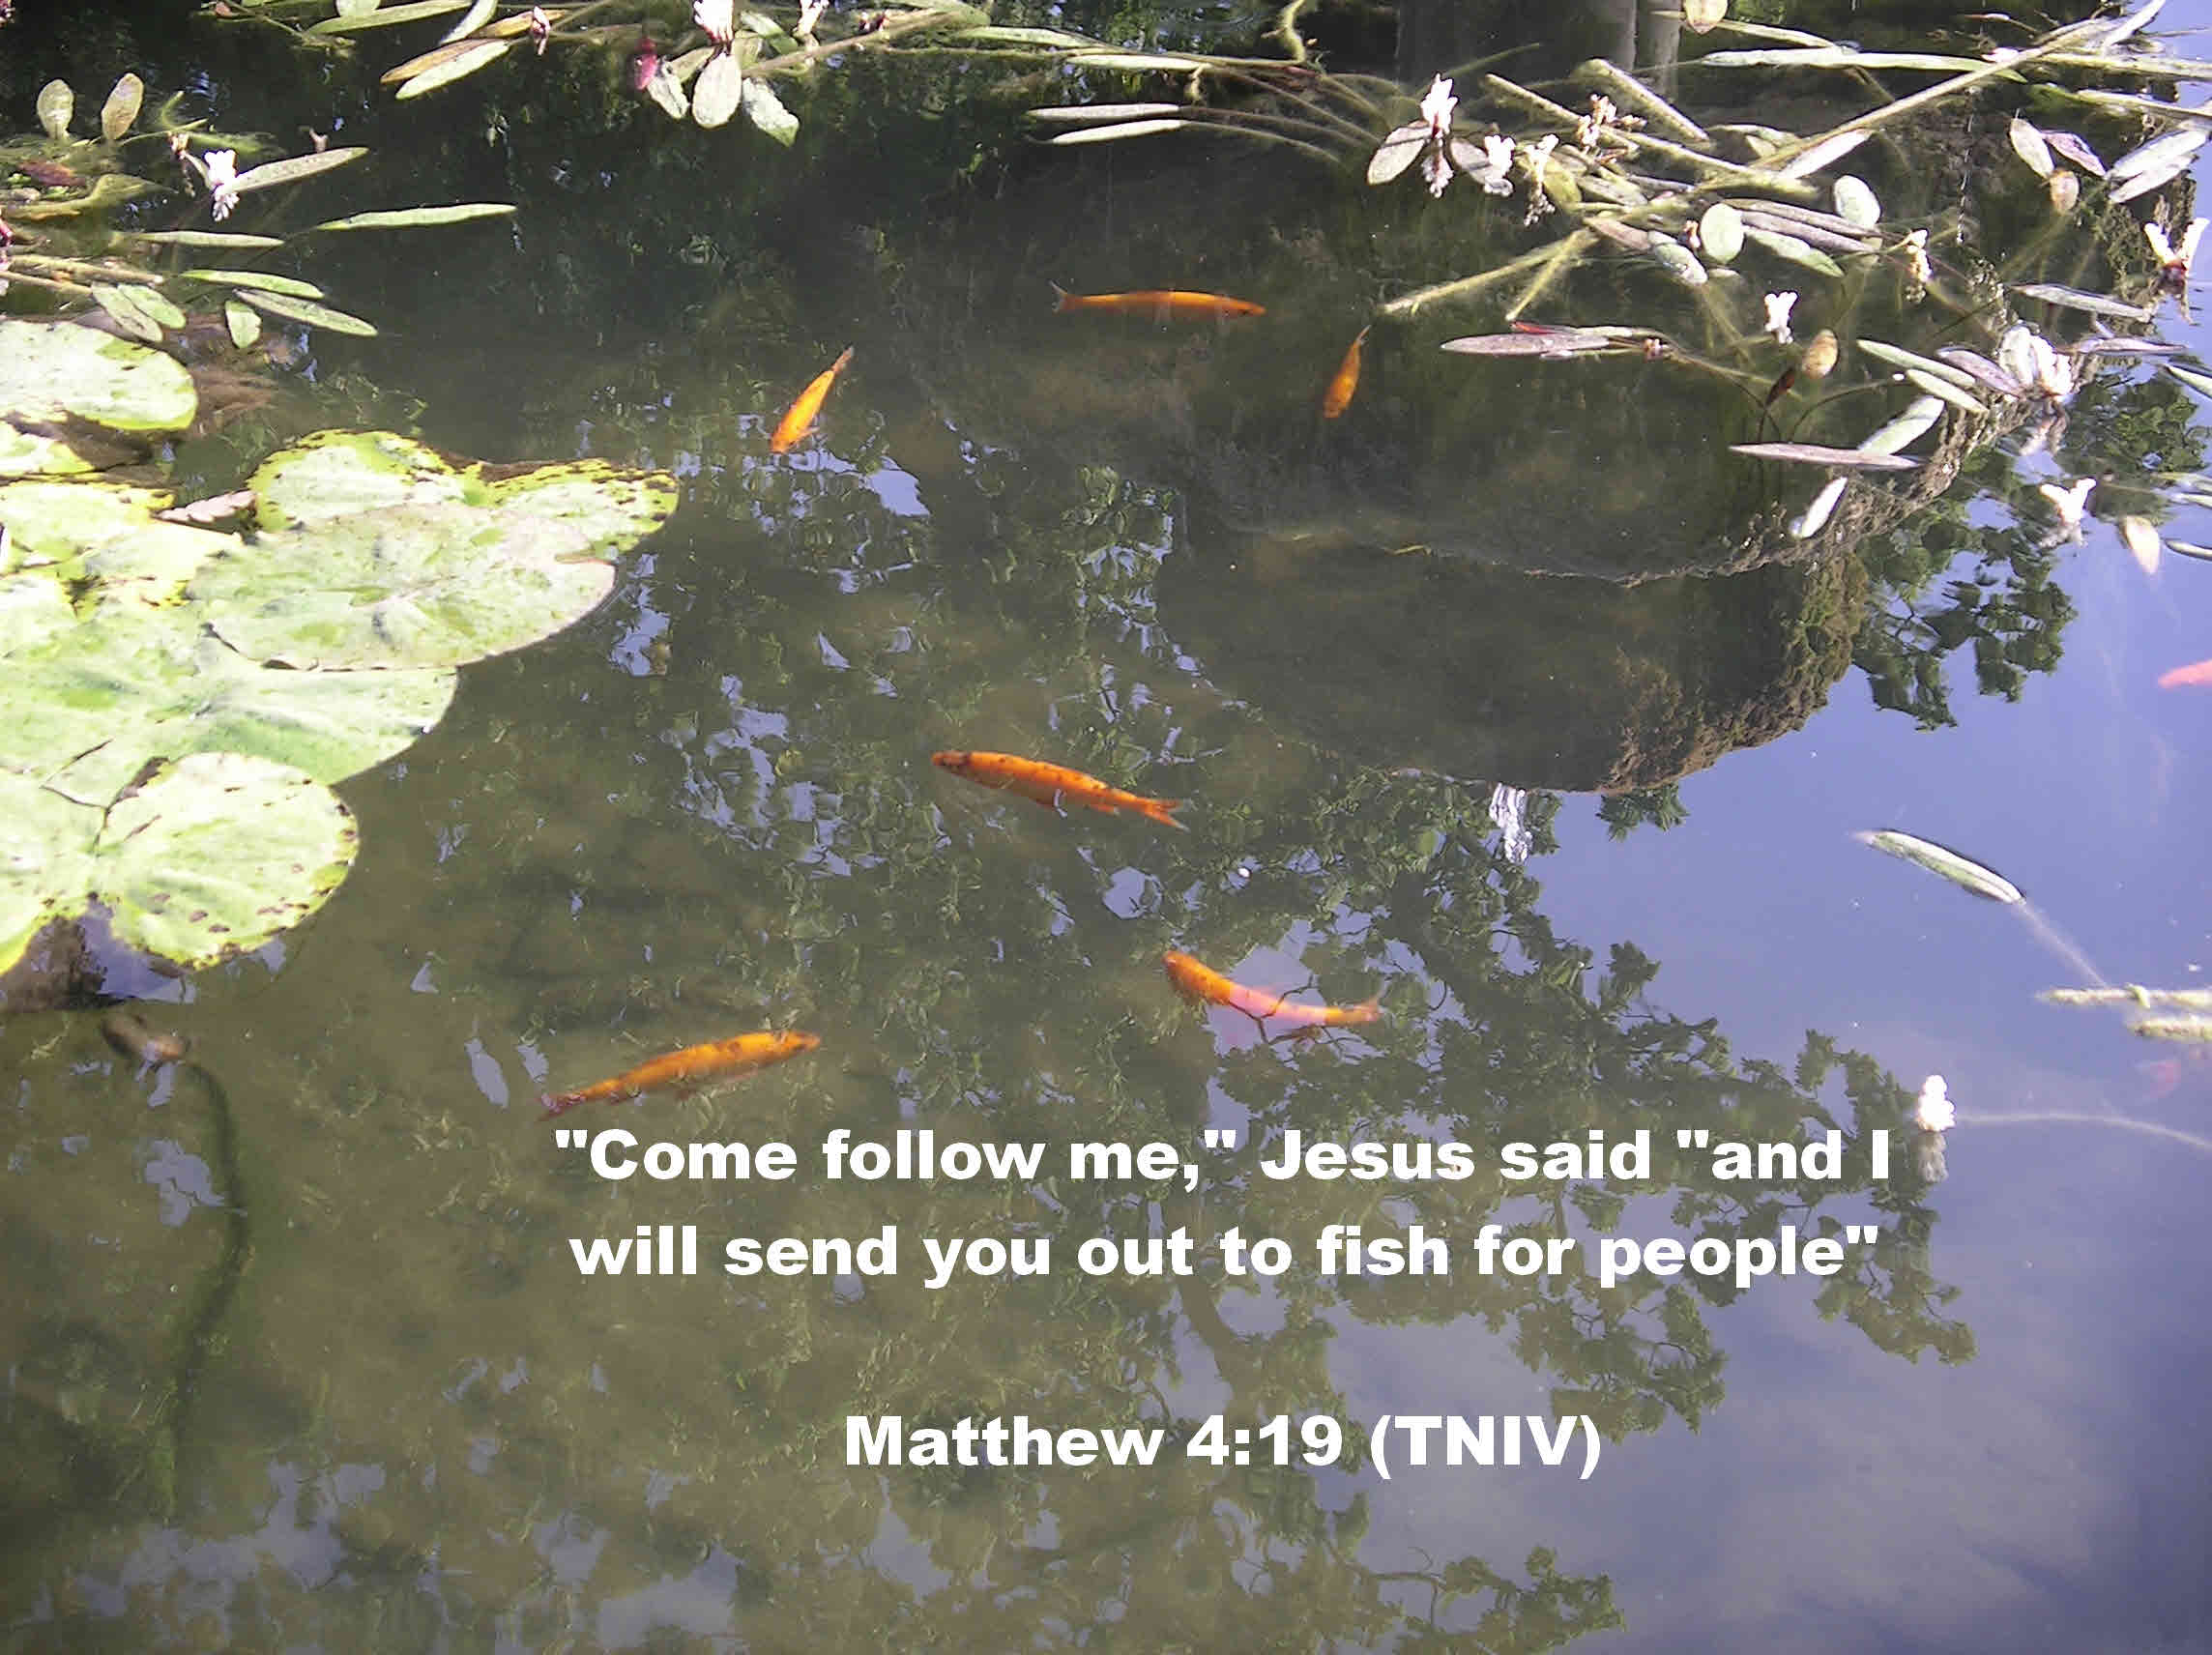 Follow me, said Jesus